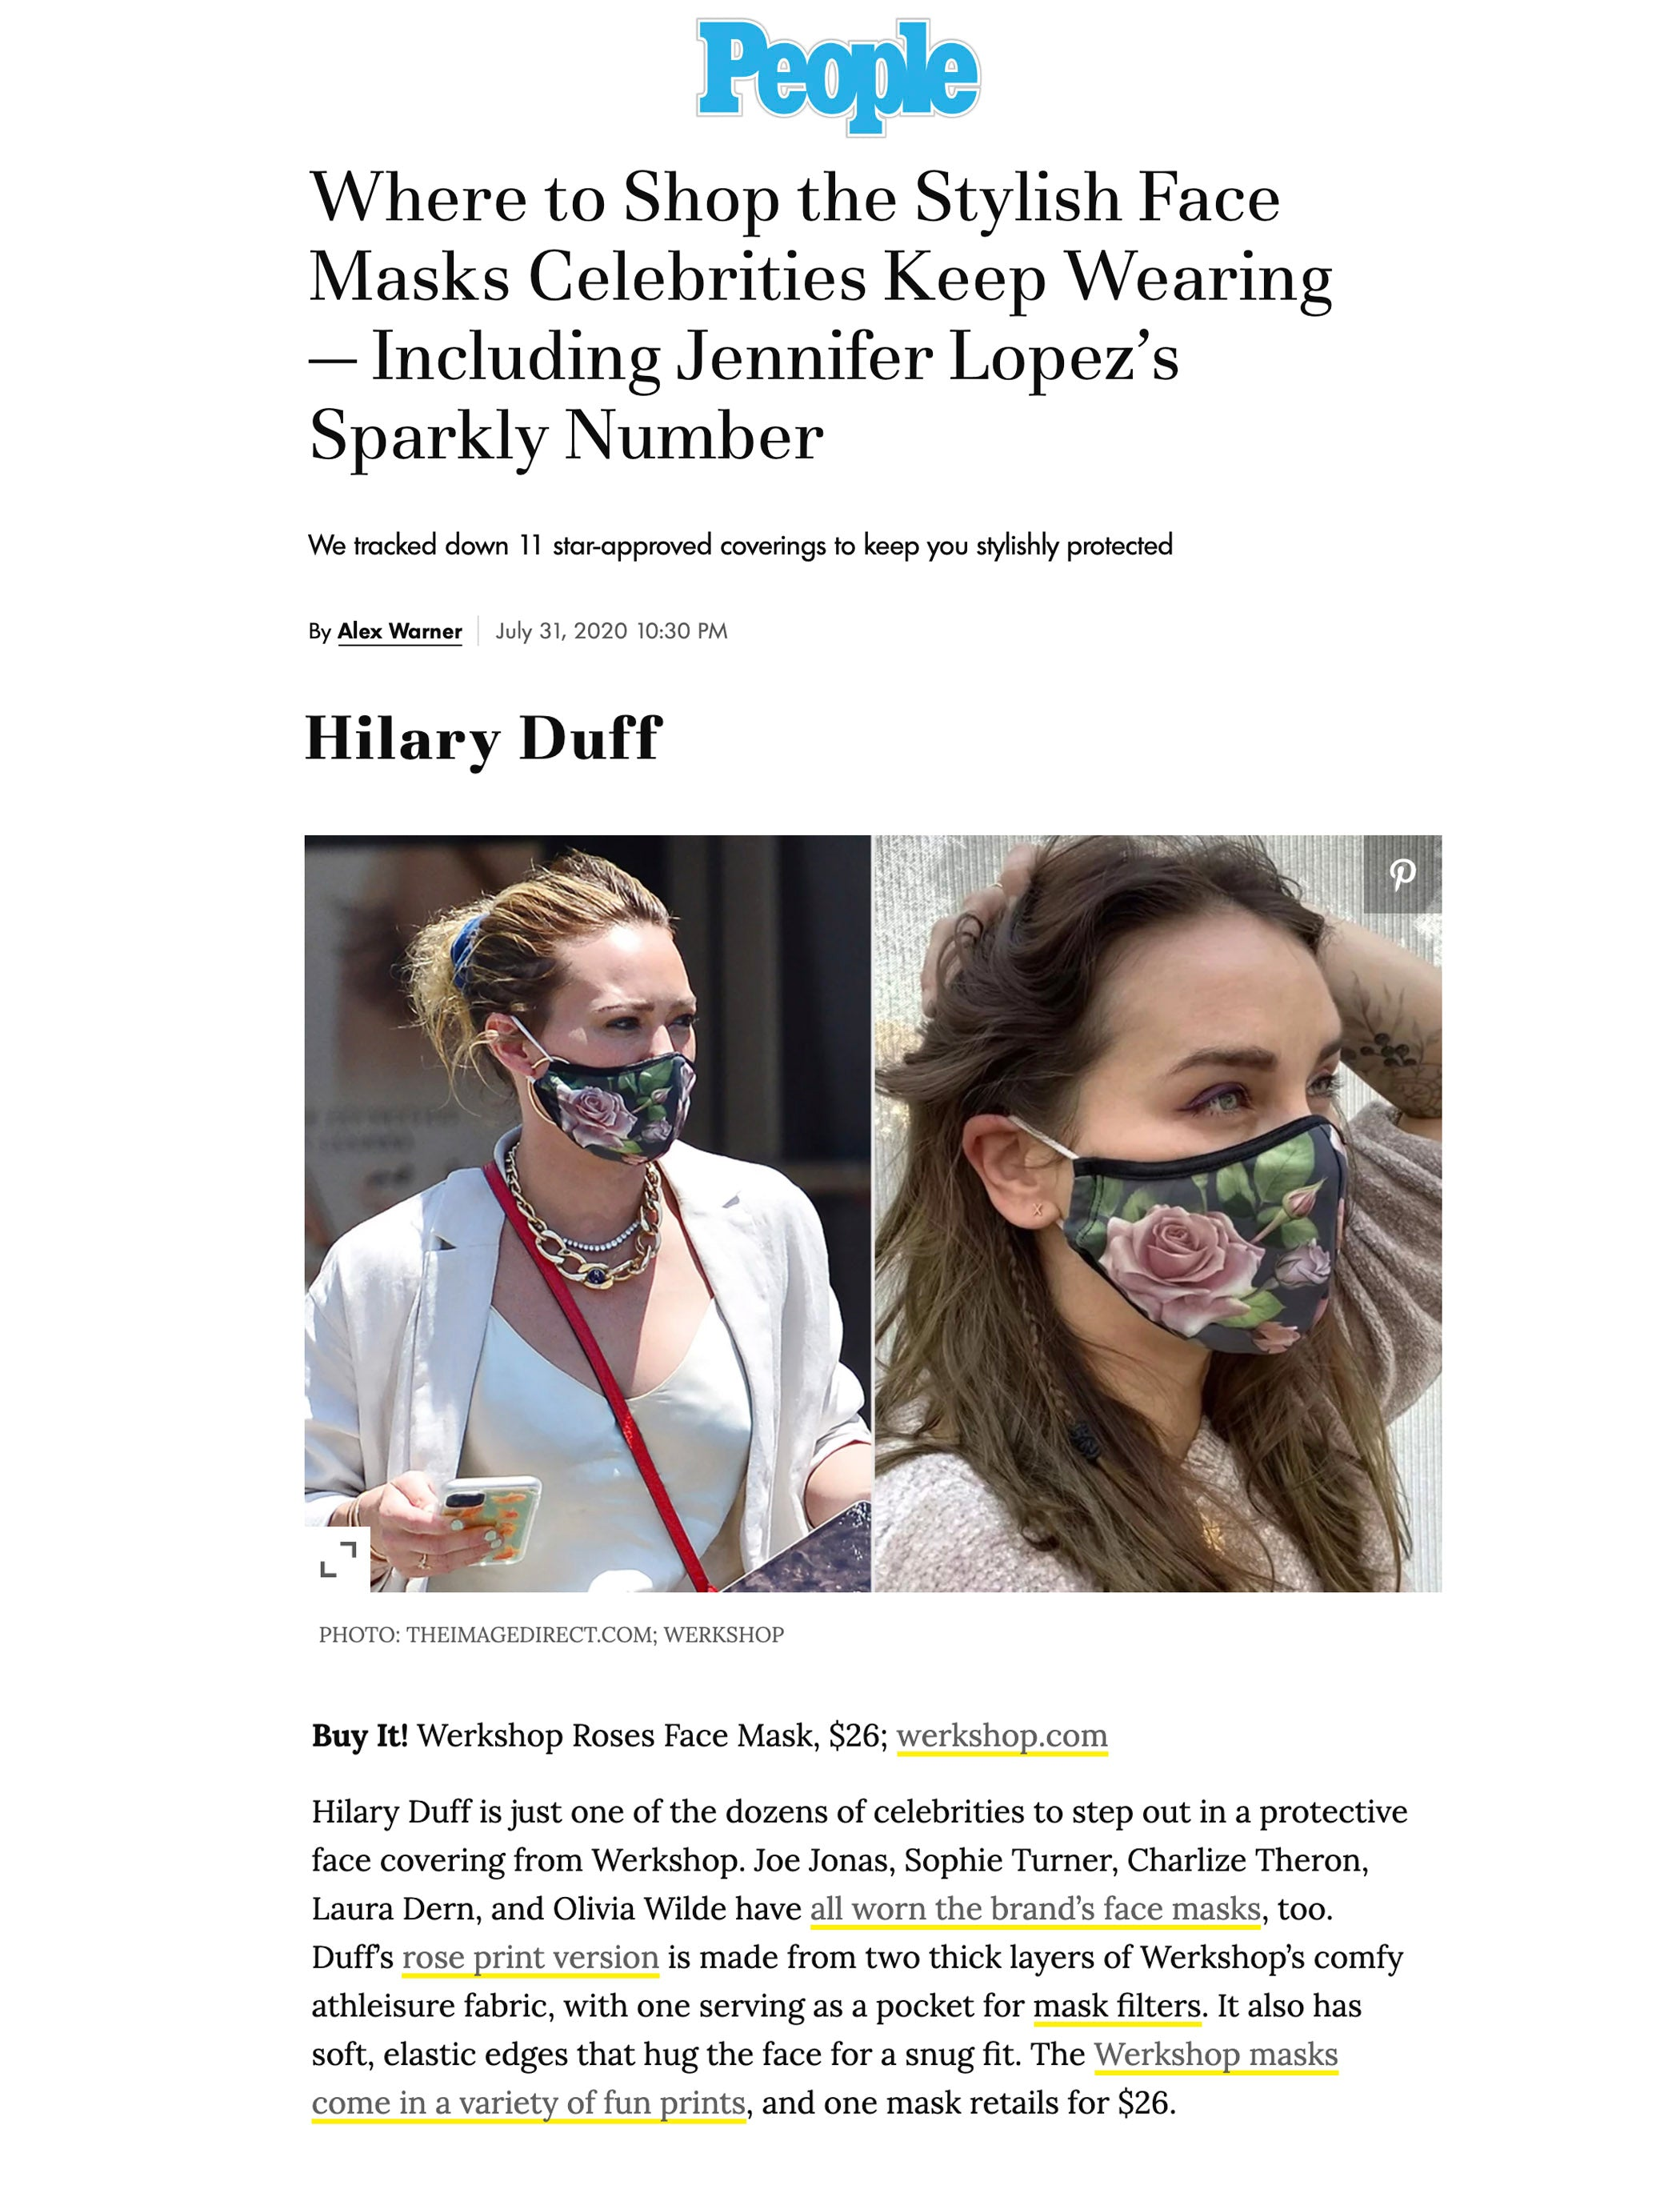 Hilary Duff wearing featured in People.com wearing WERKSHOP Roses Face Mask